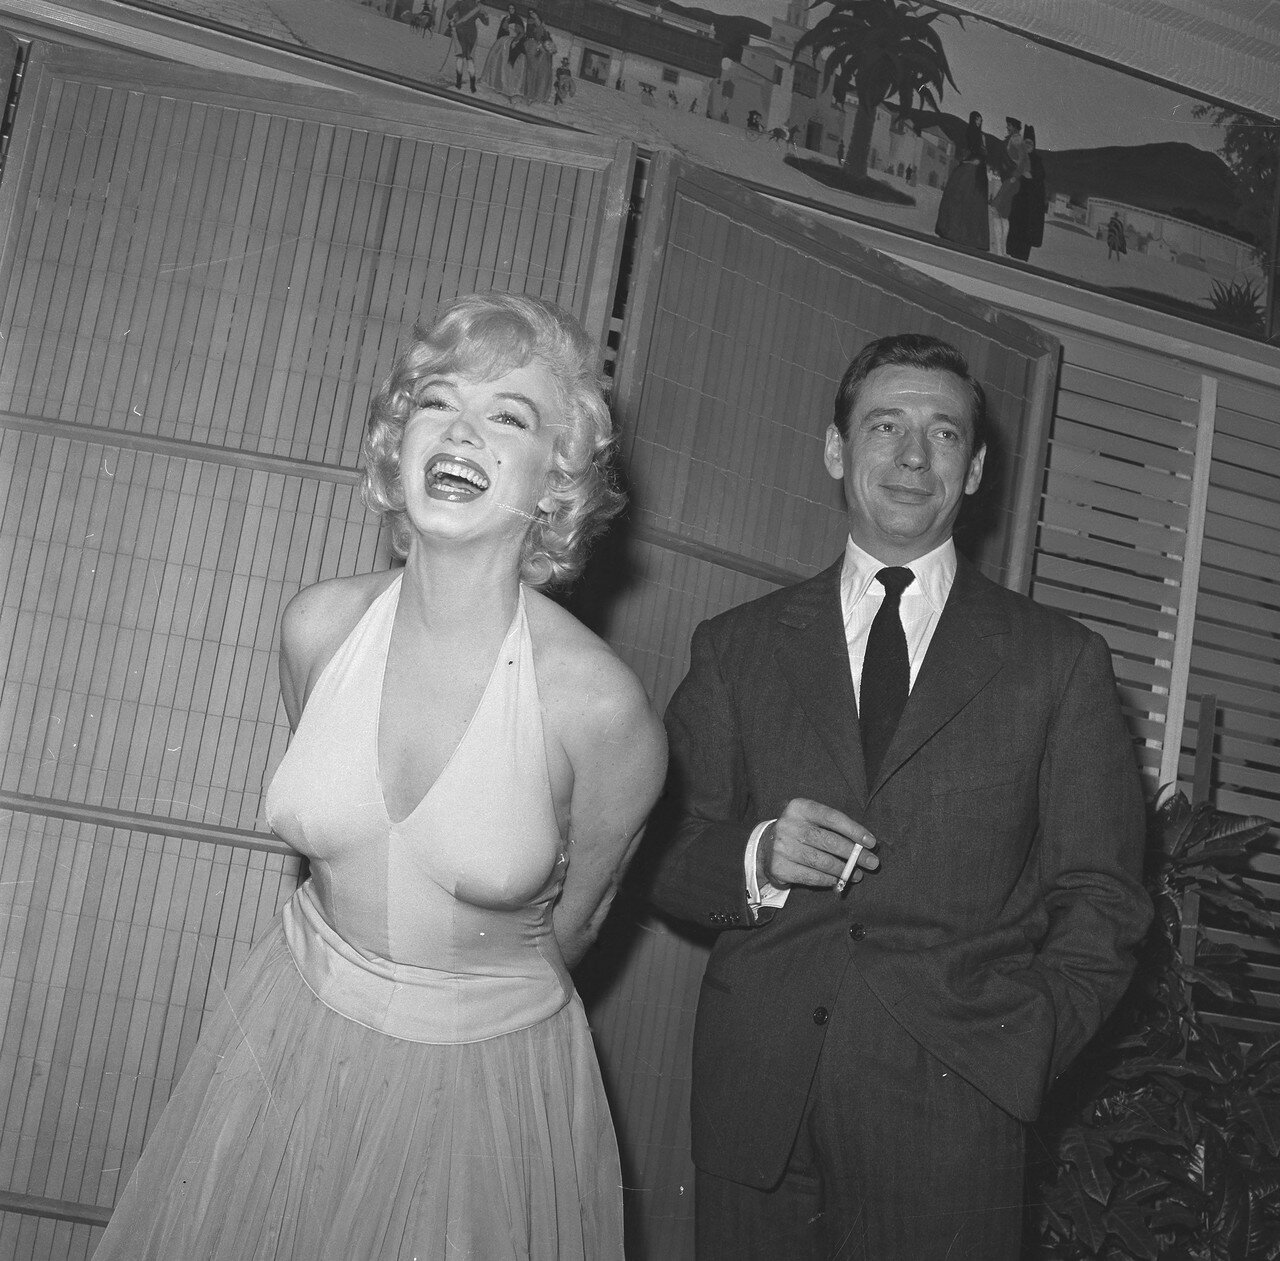 Marilyn at Cocktail Party with Yves Montand